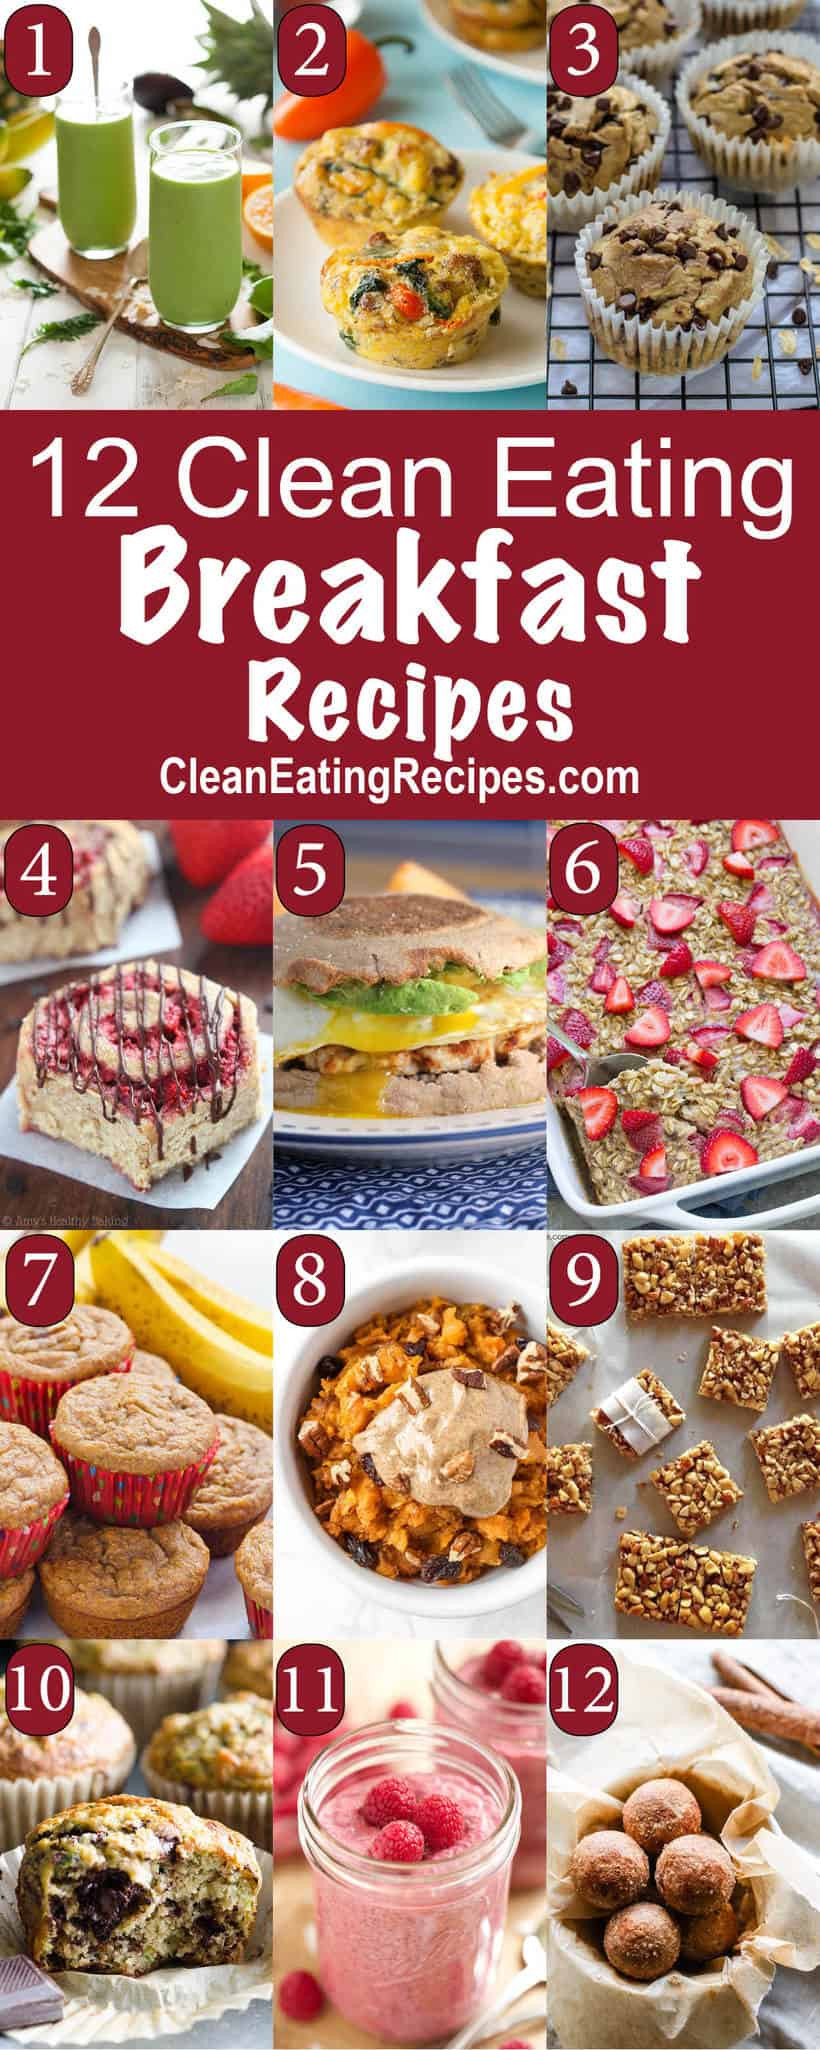 Clean Eat Breakfast Recipes  12 Clean Eating Breakfast Ideas from Other Bloggers